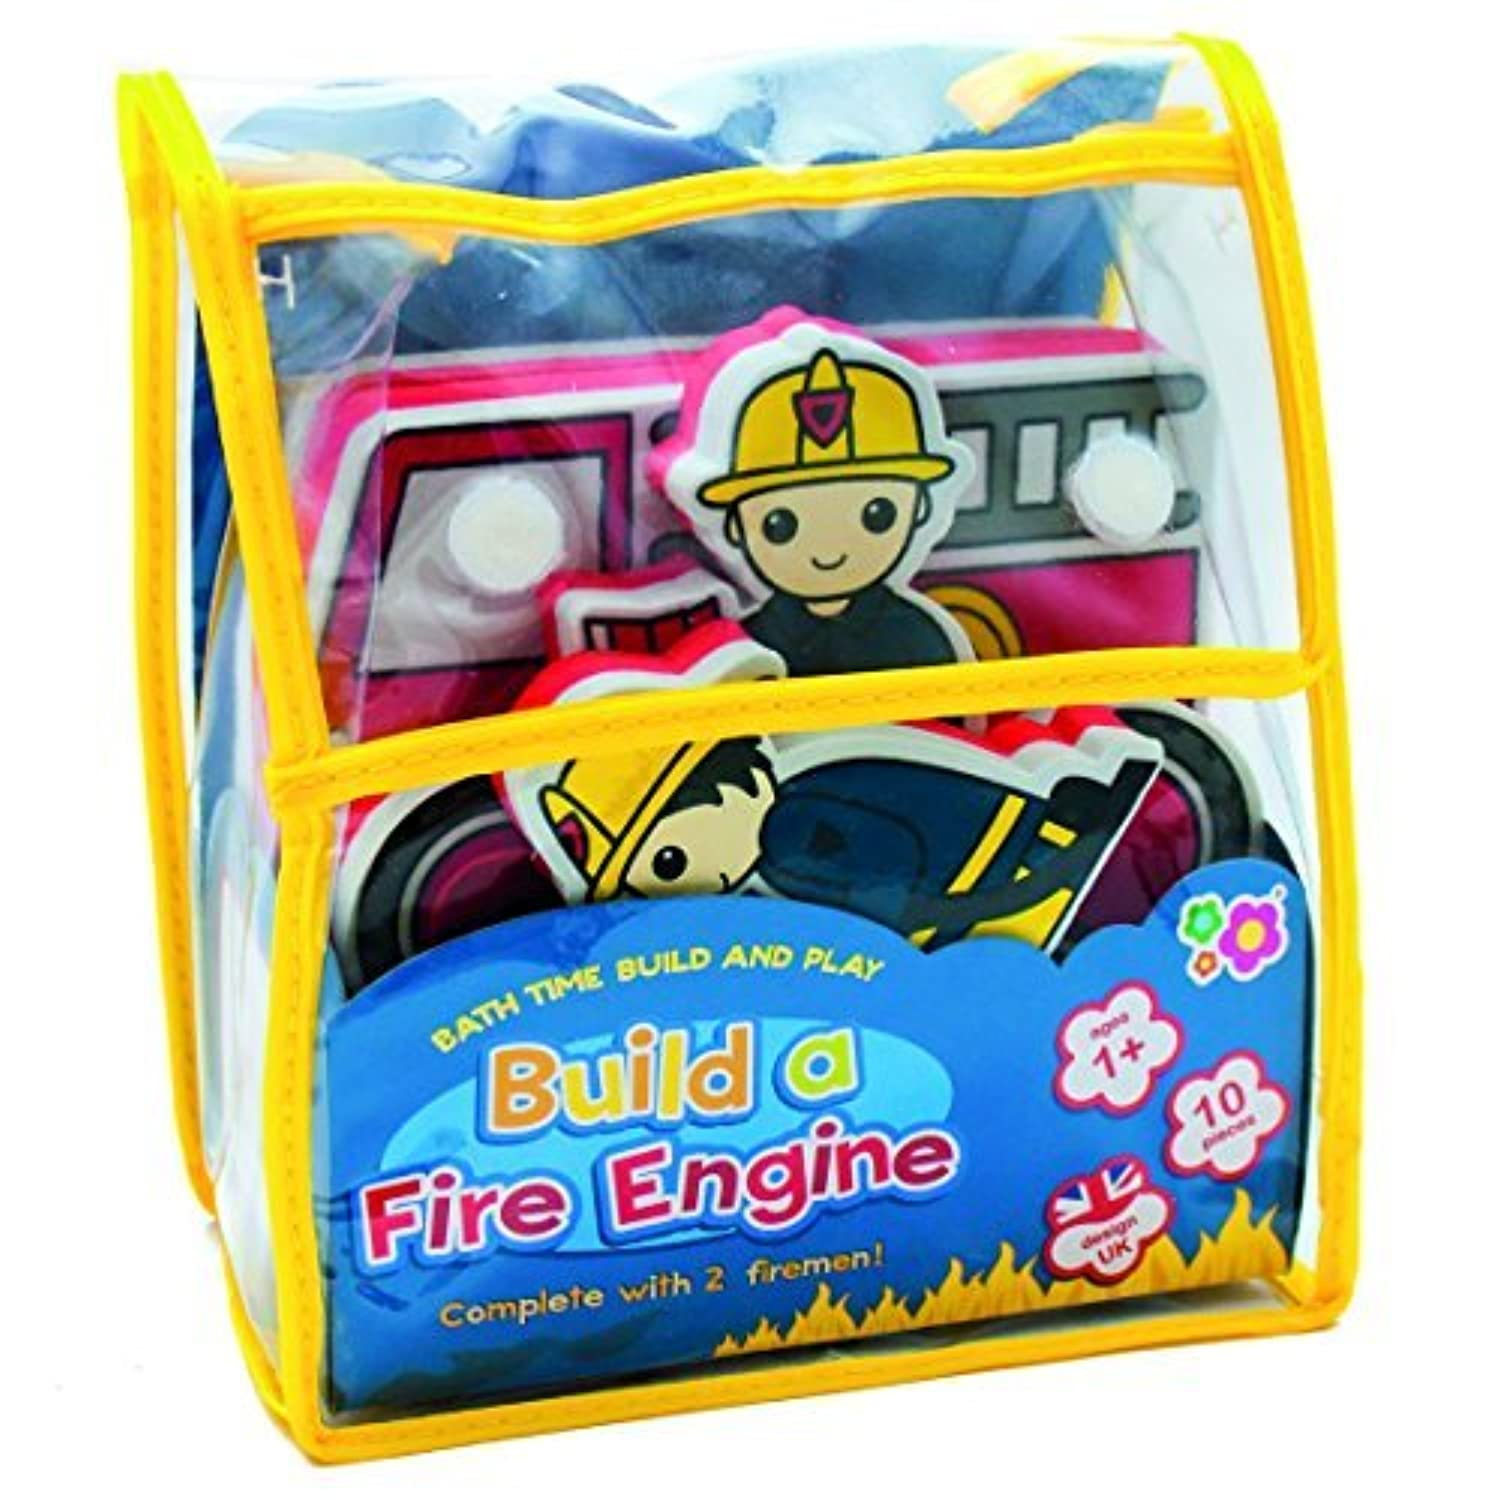 Meadow Kids Build A Fire Engine Firetruck [並行輸入品]